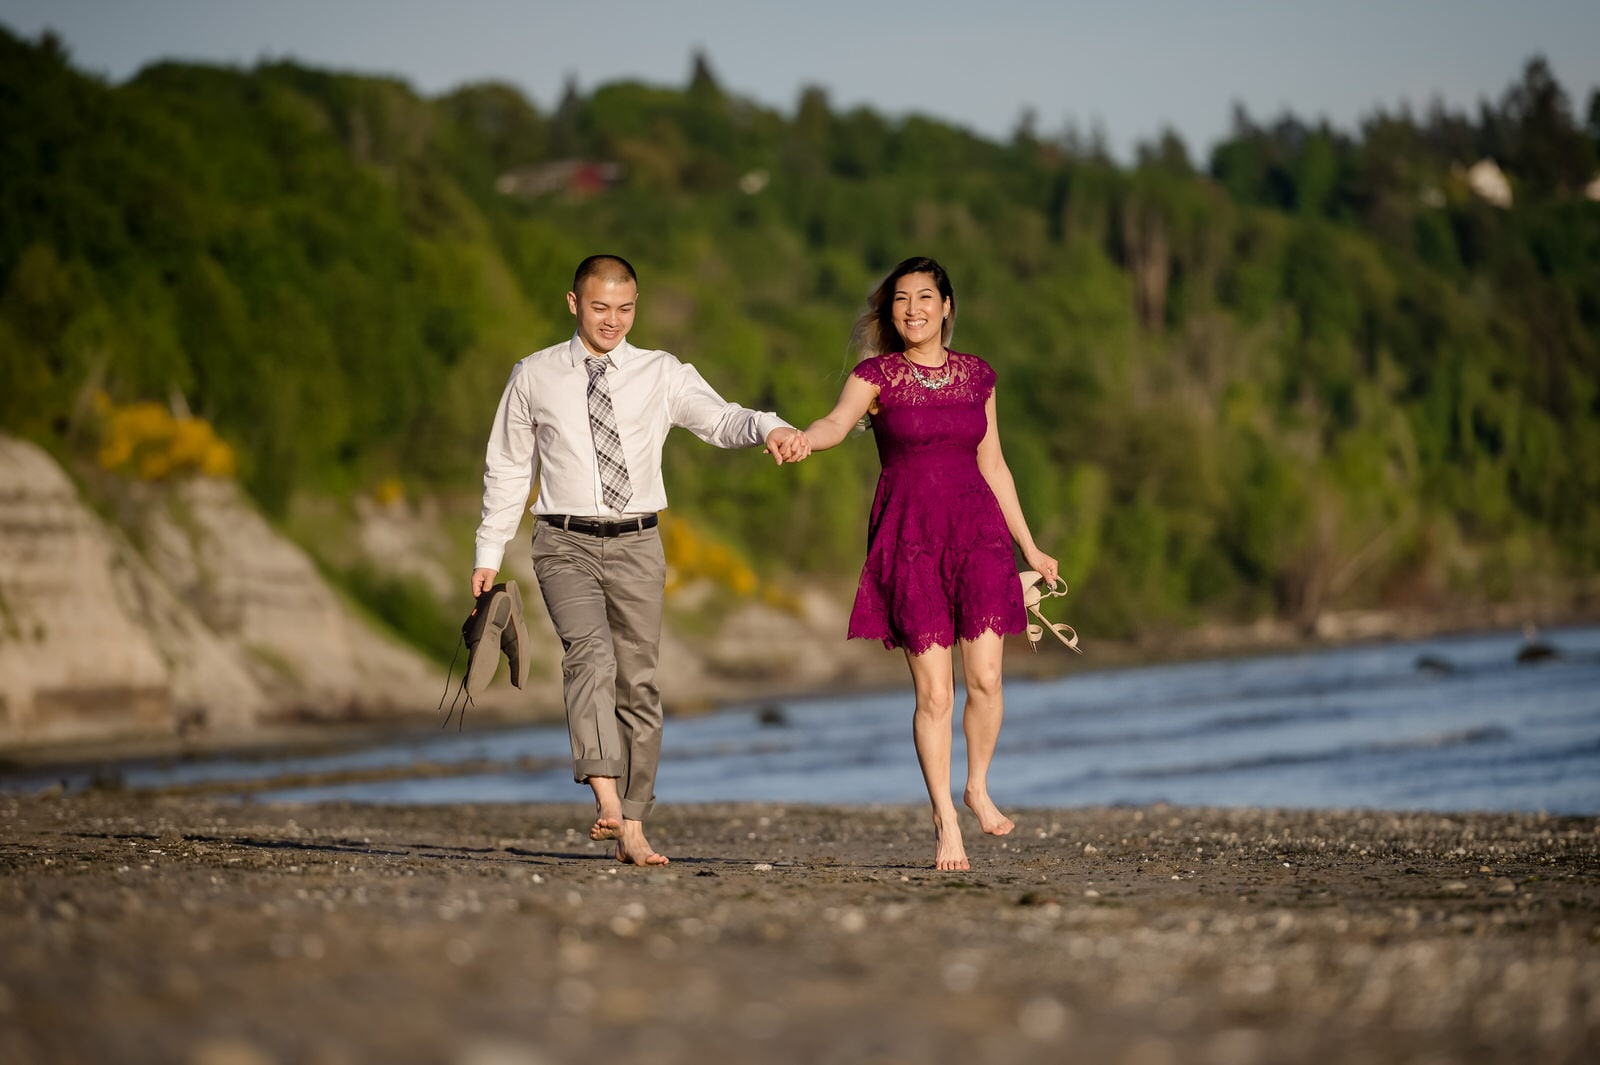 The couple is walking hand in hand on the beach.